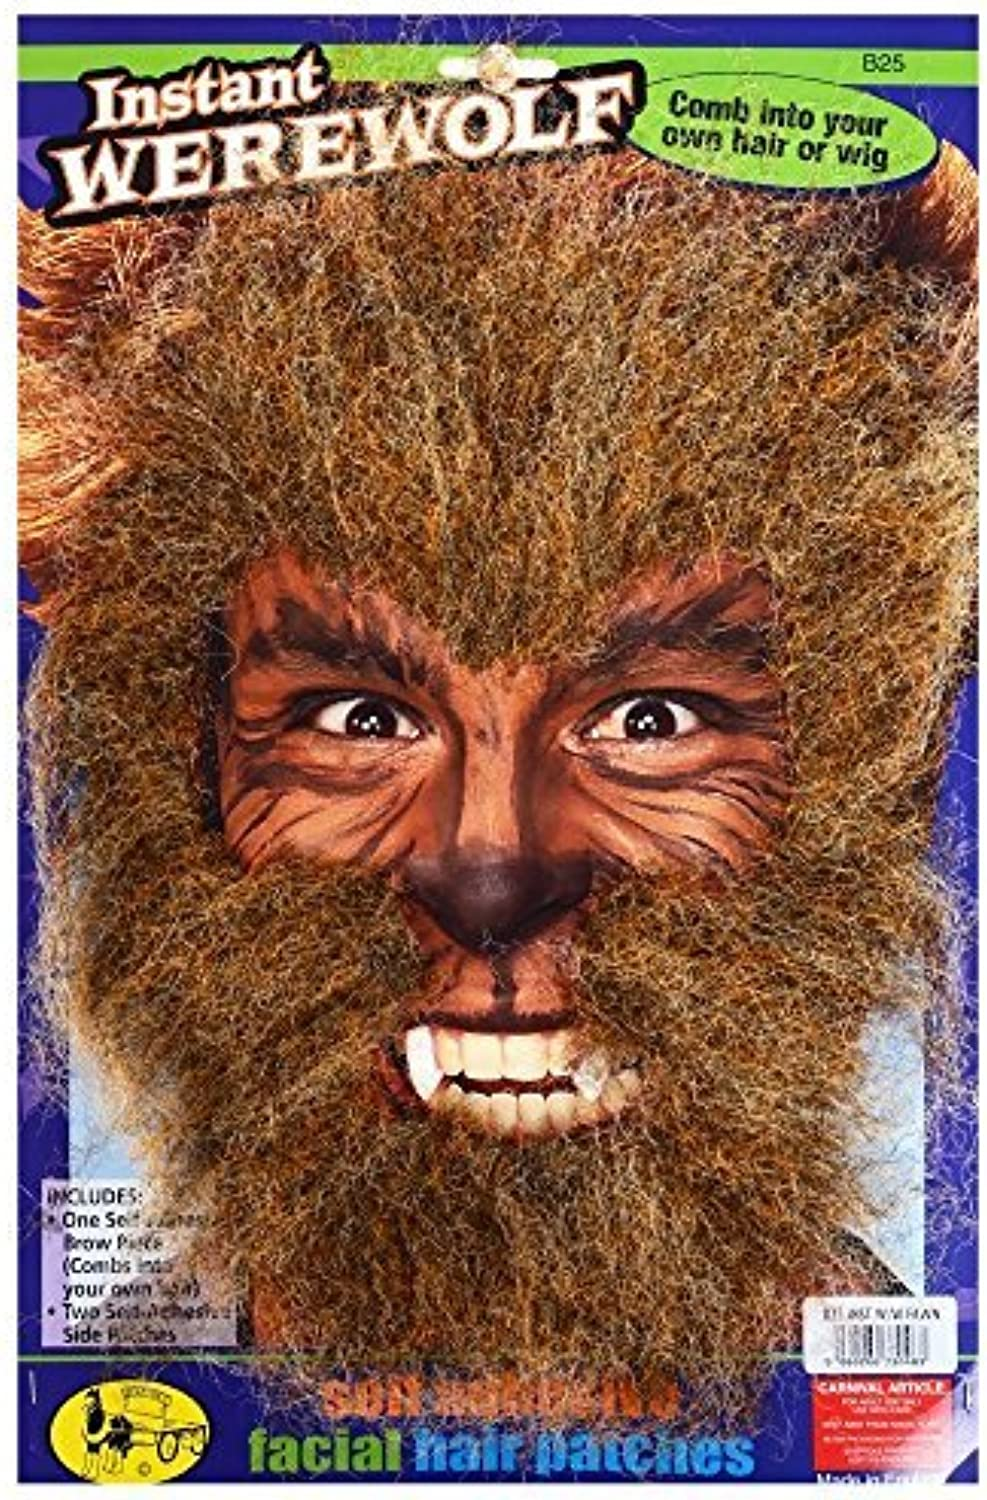 Instant werewolf fake hair patches  mottled brown, combs into your own hair or wig by Steptoes